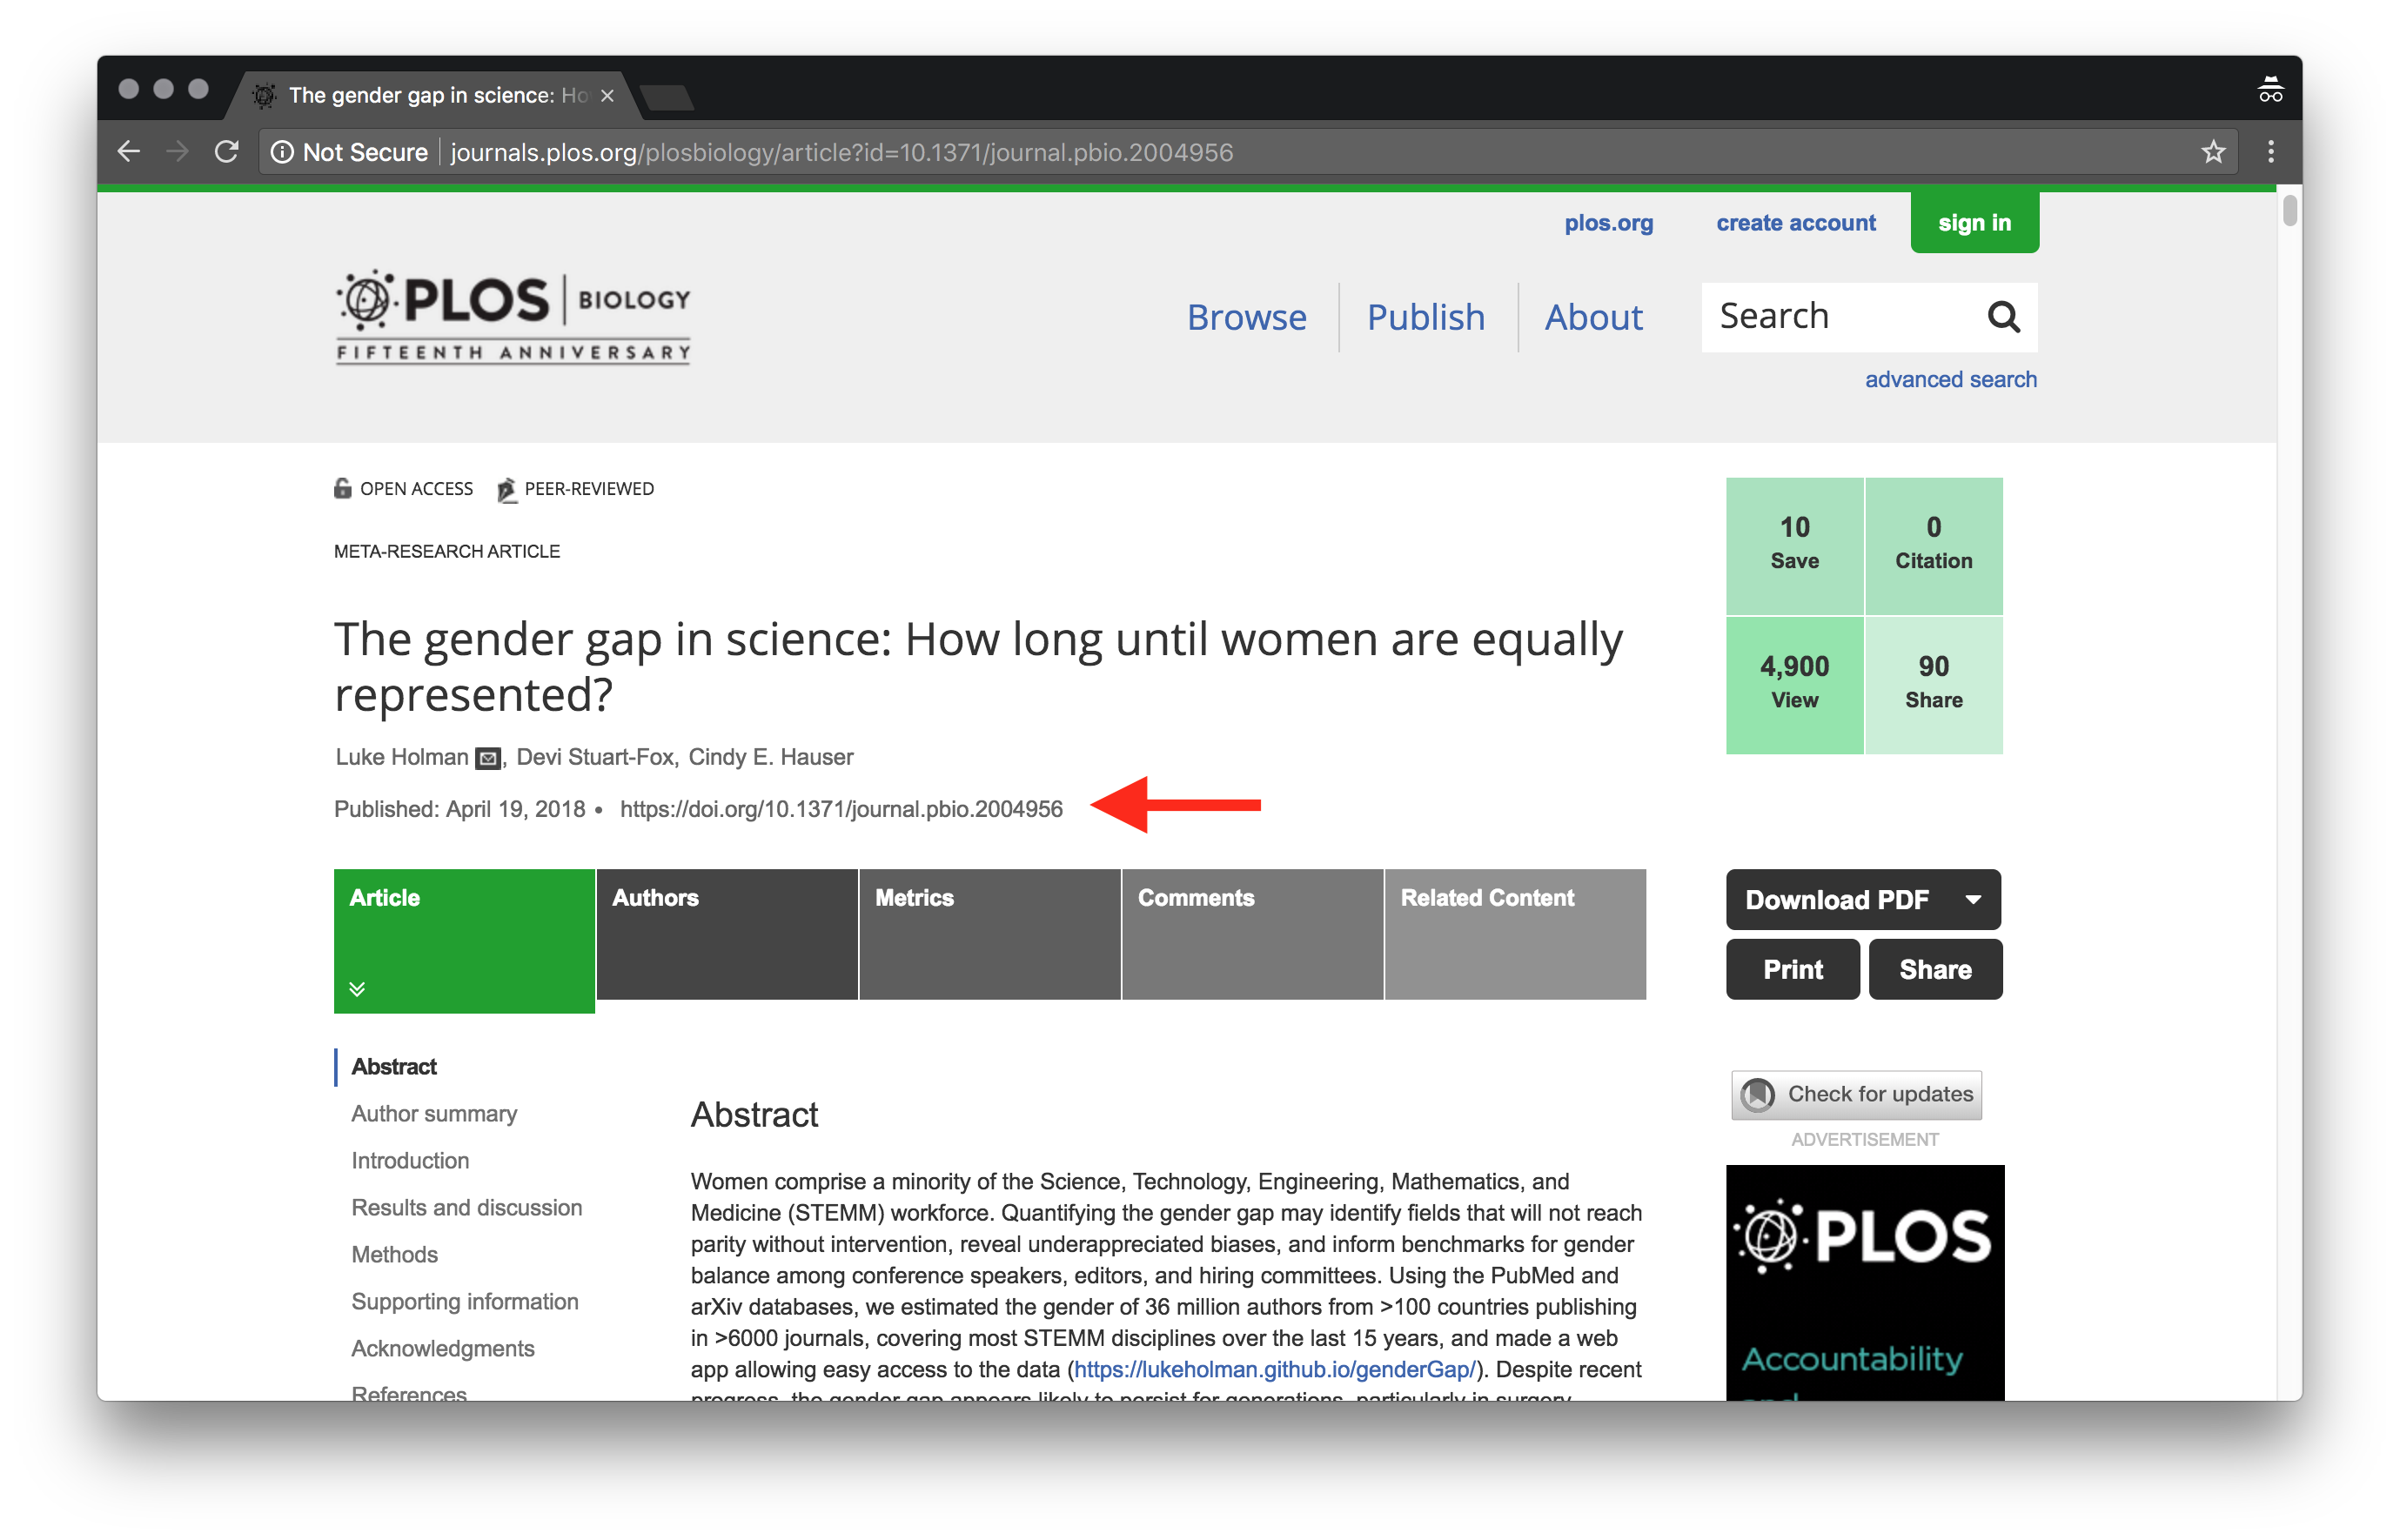 Article page on PLOS website.